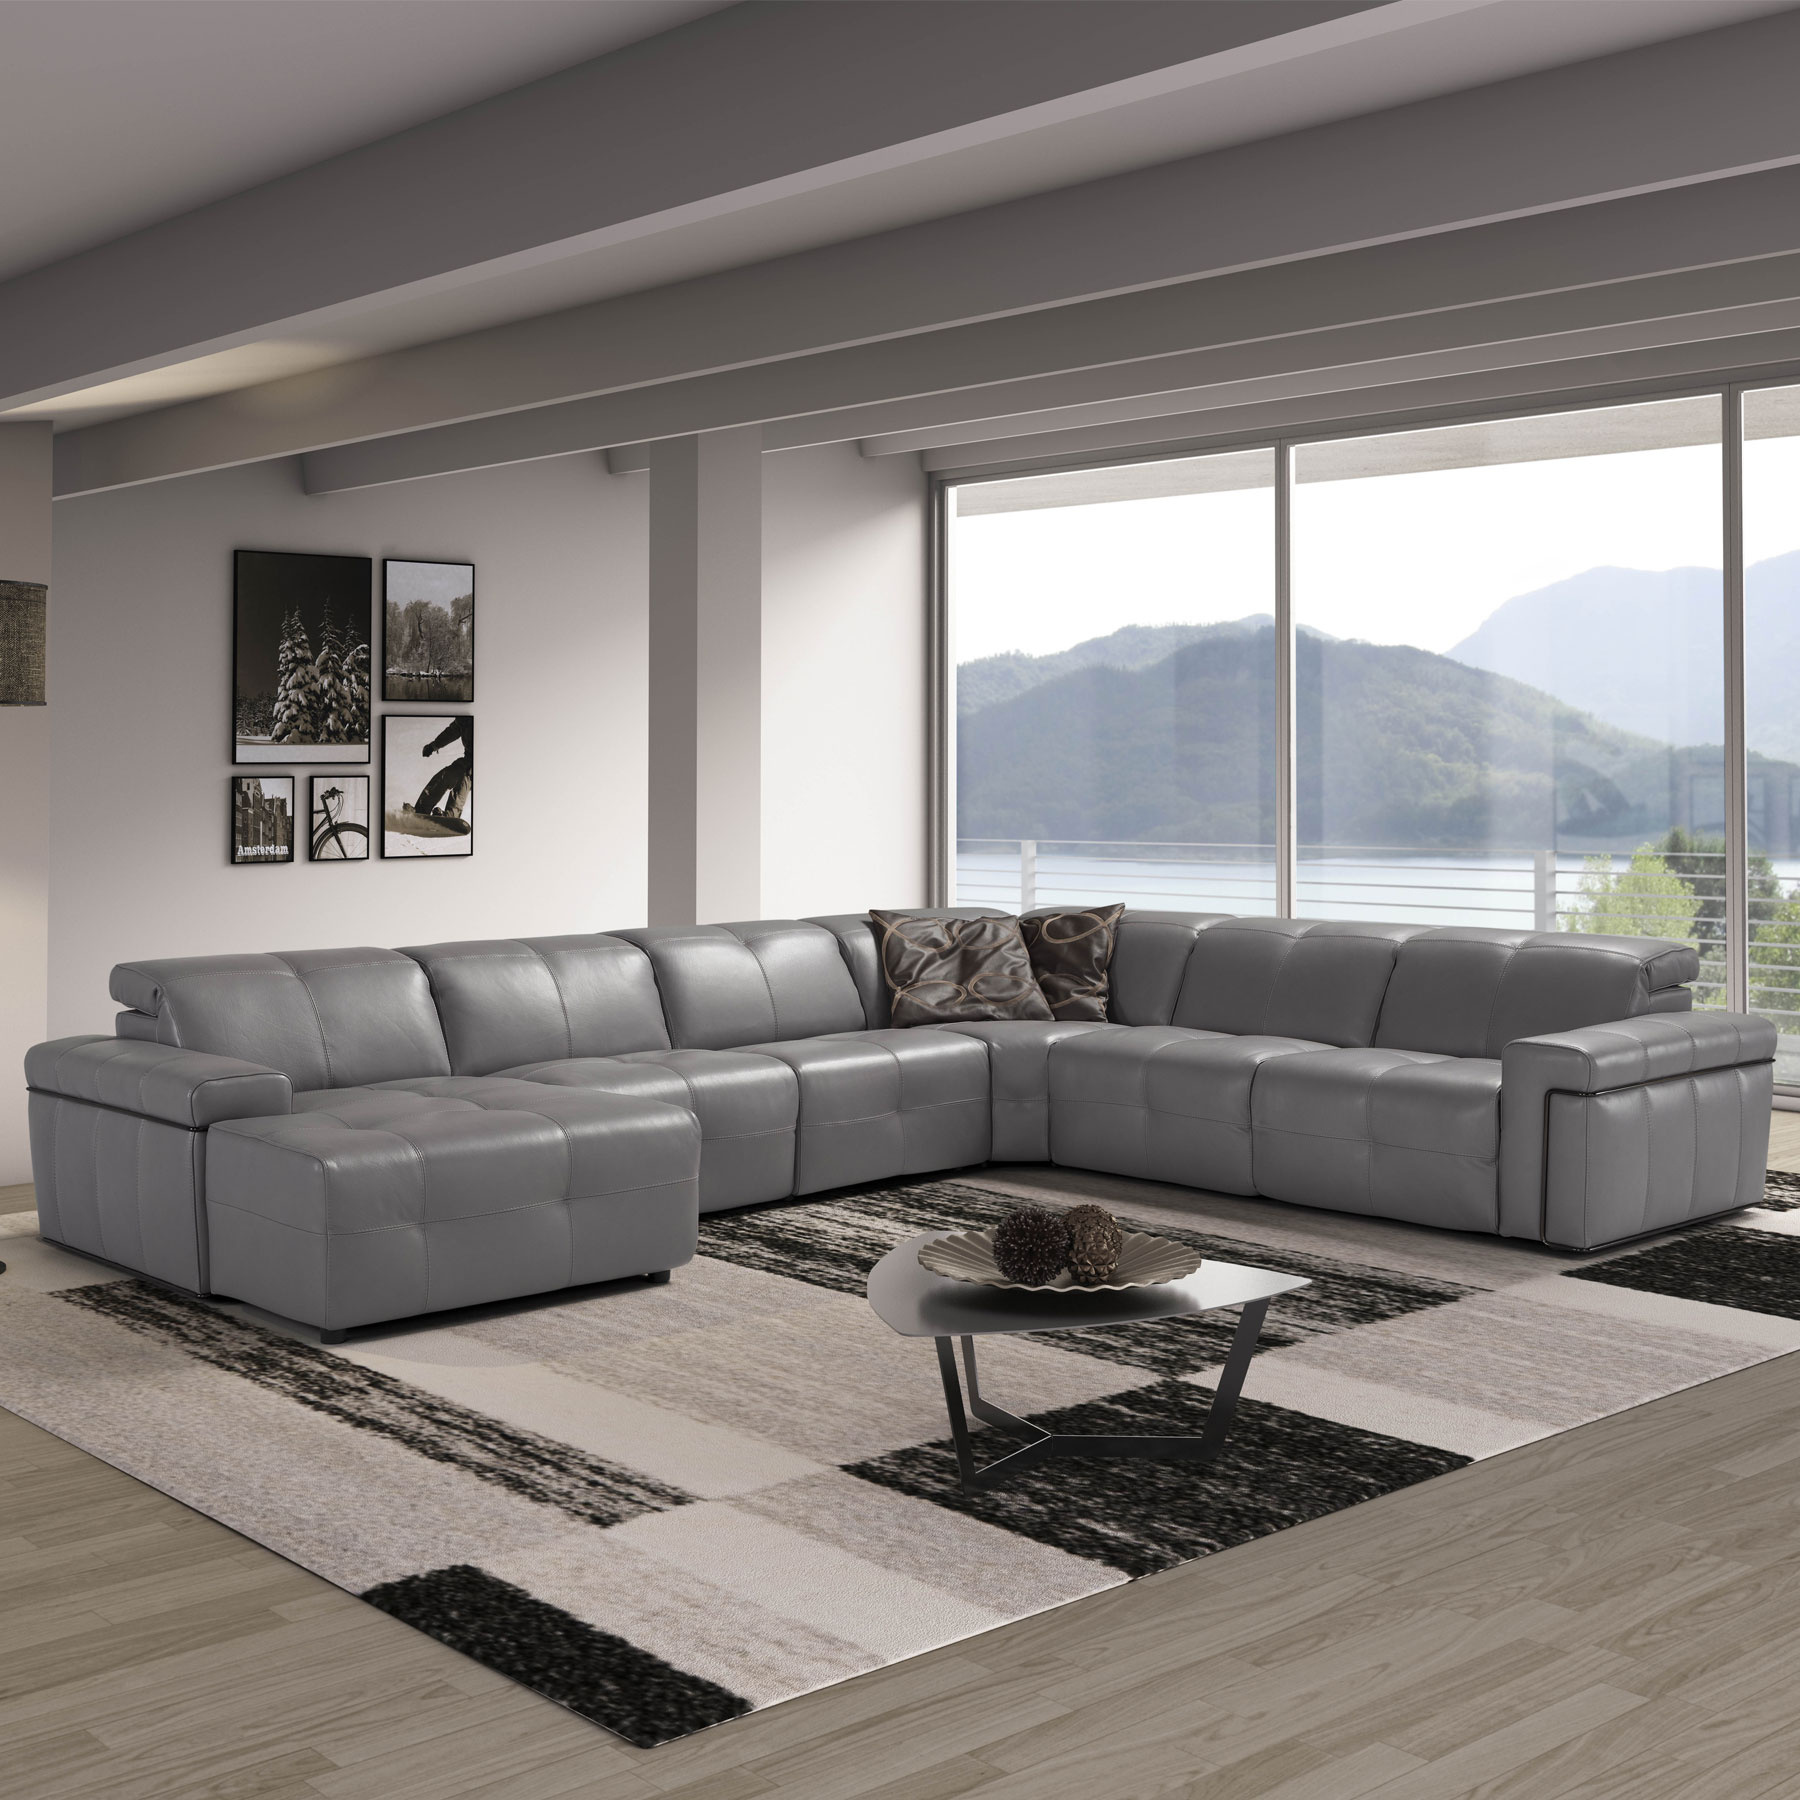 Picture of: Parma Recliner Corner Group Sofa Collection